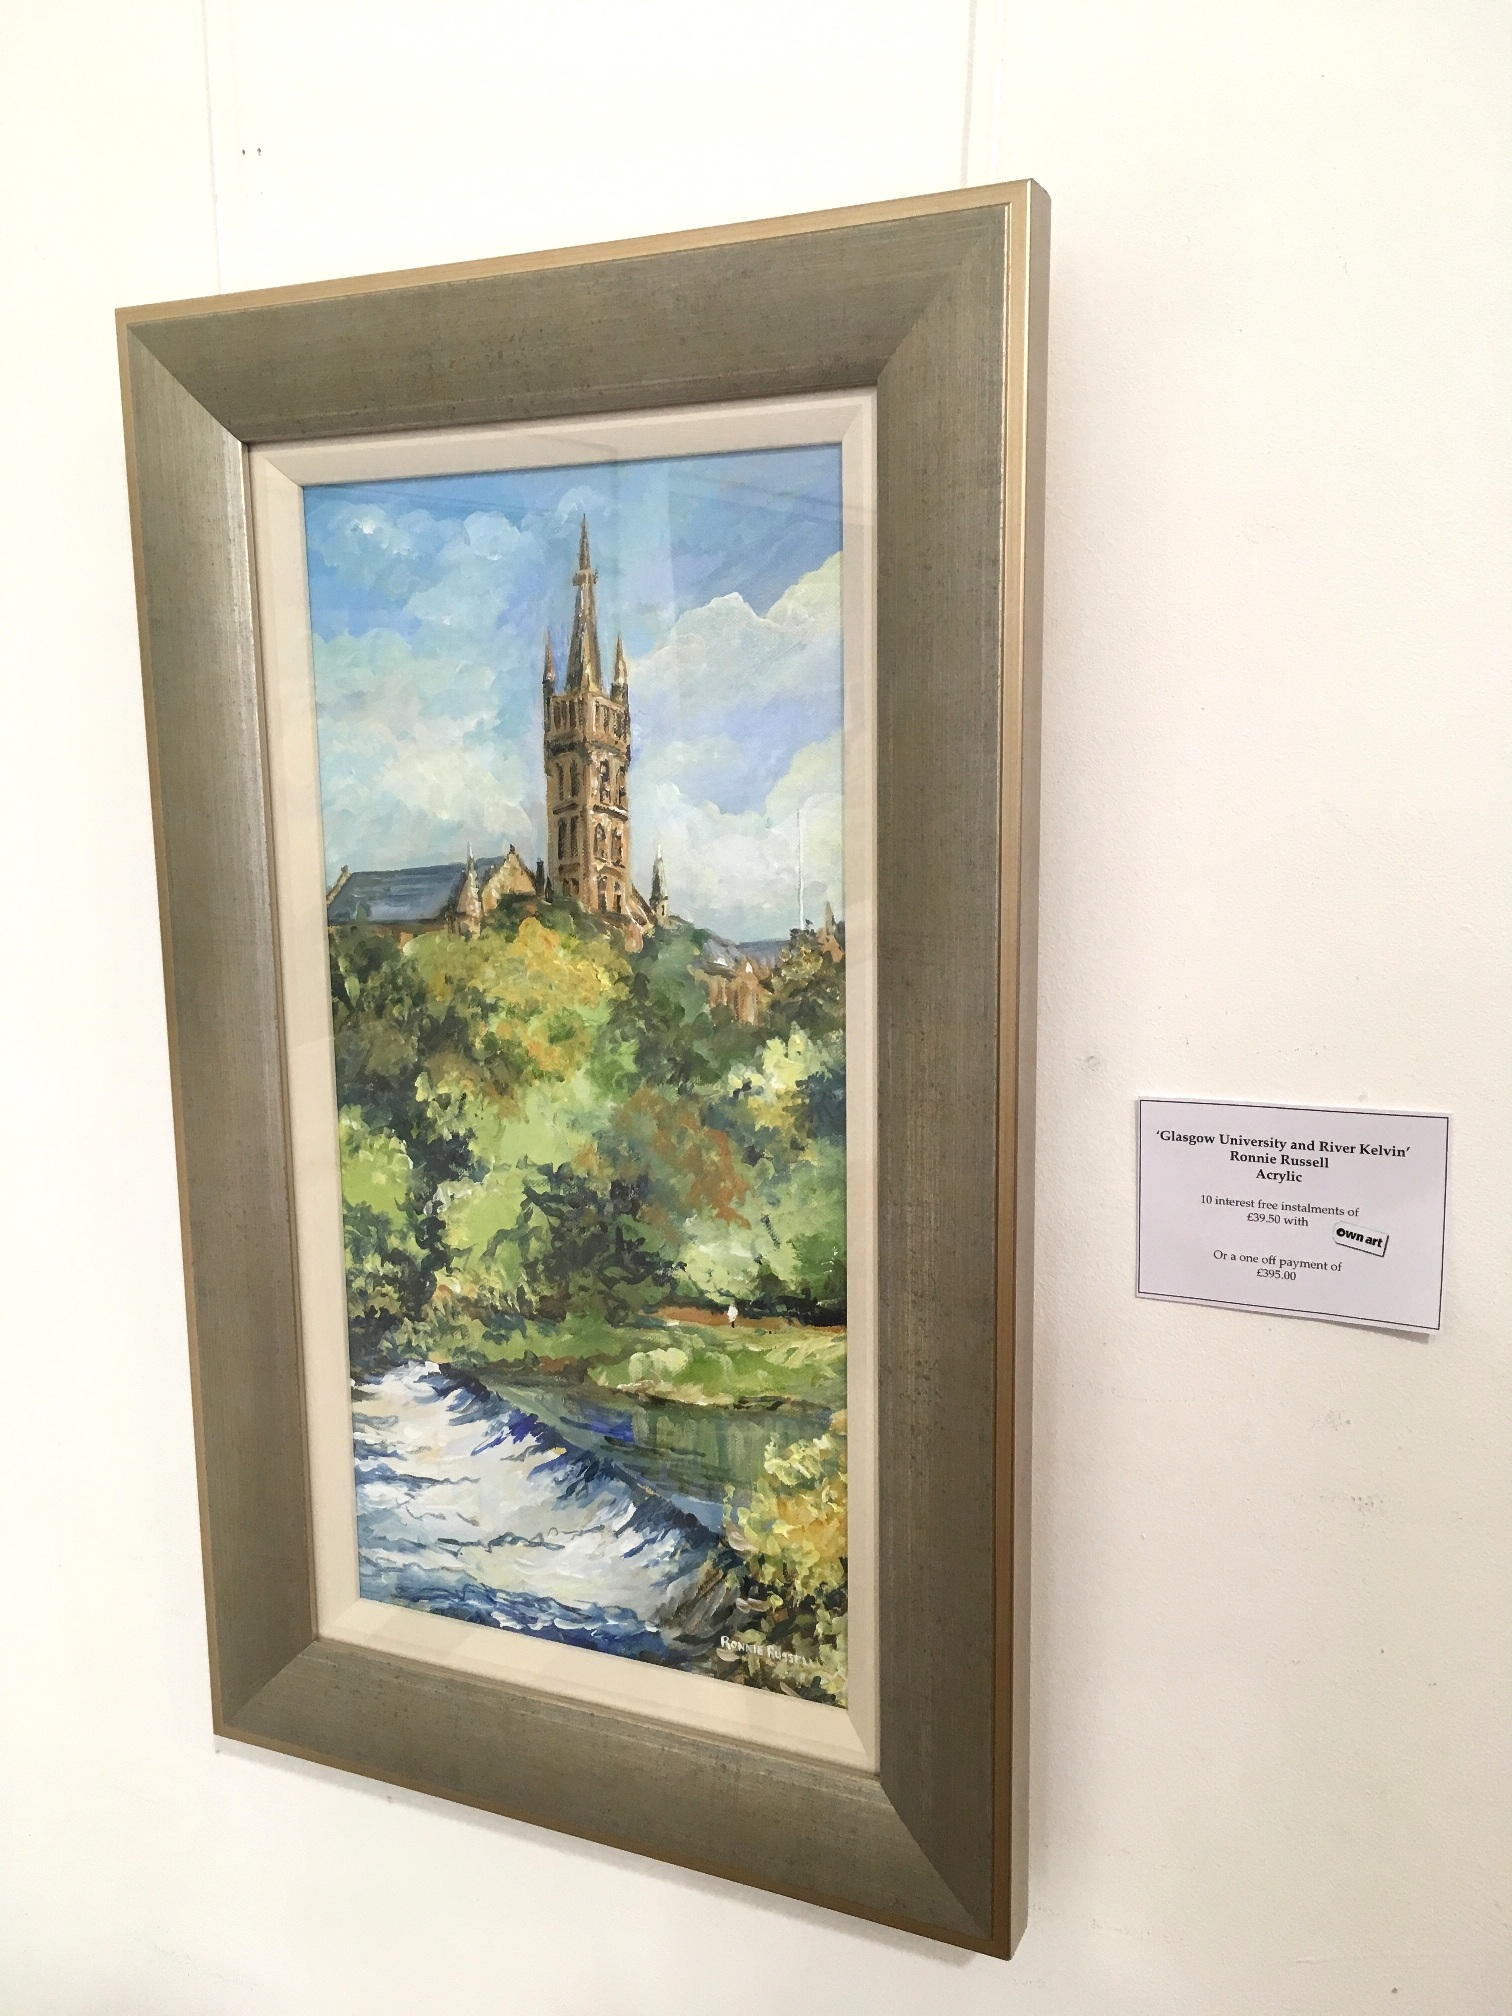 'Glasgow University and River Kelvin' by artist Ronnie Russell